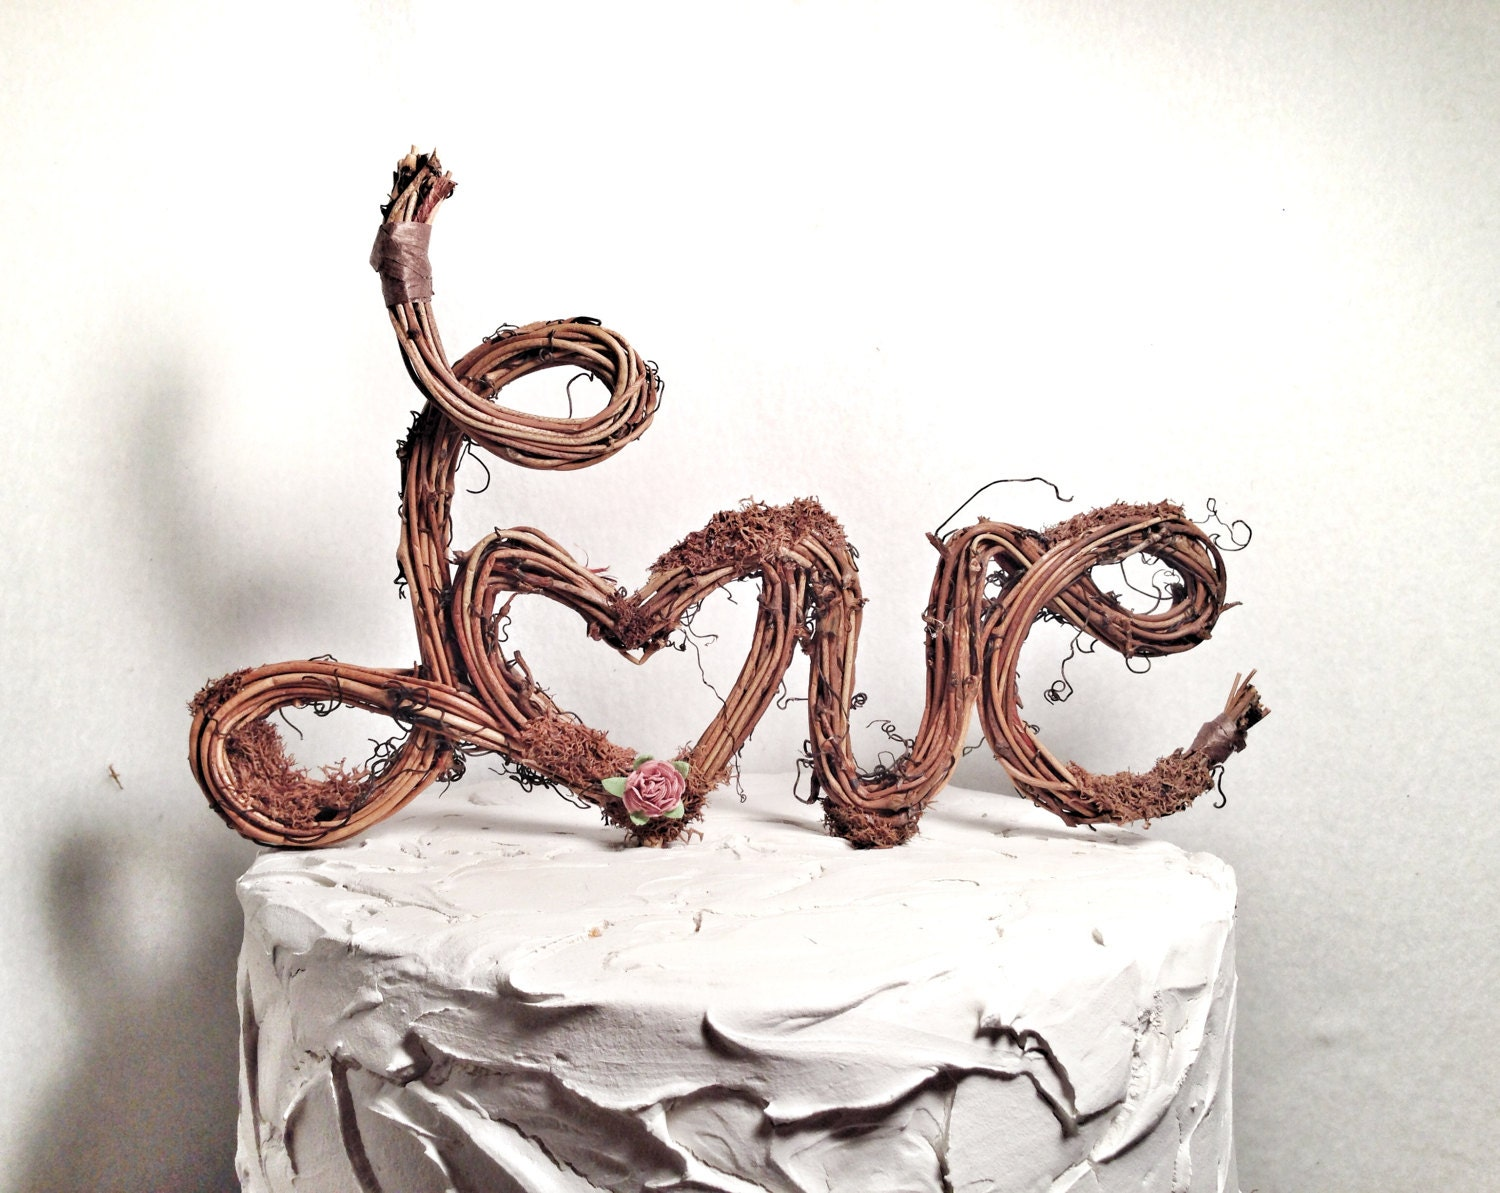 Handmade Grapevine Rustic Wedding Cake Toppers Love Letter